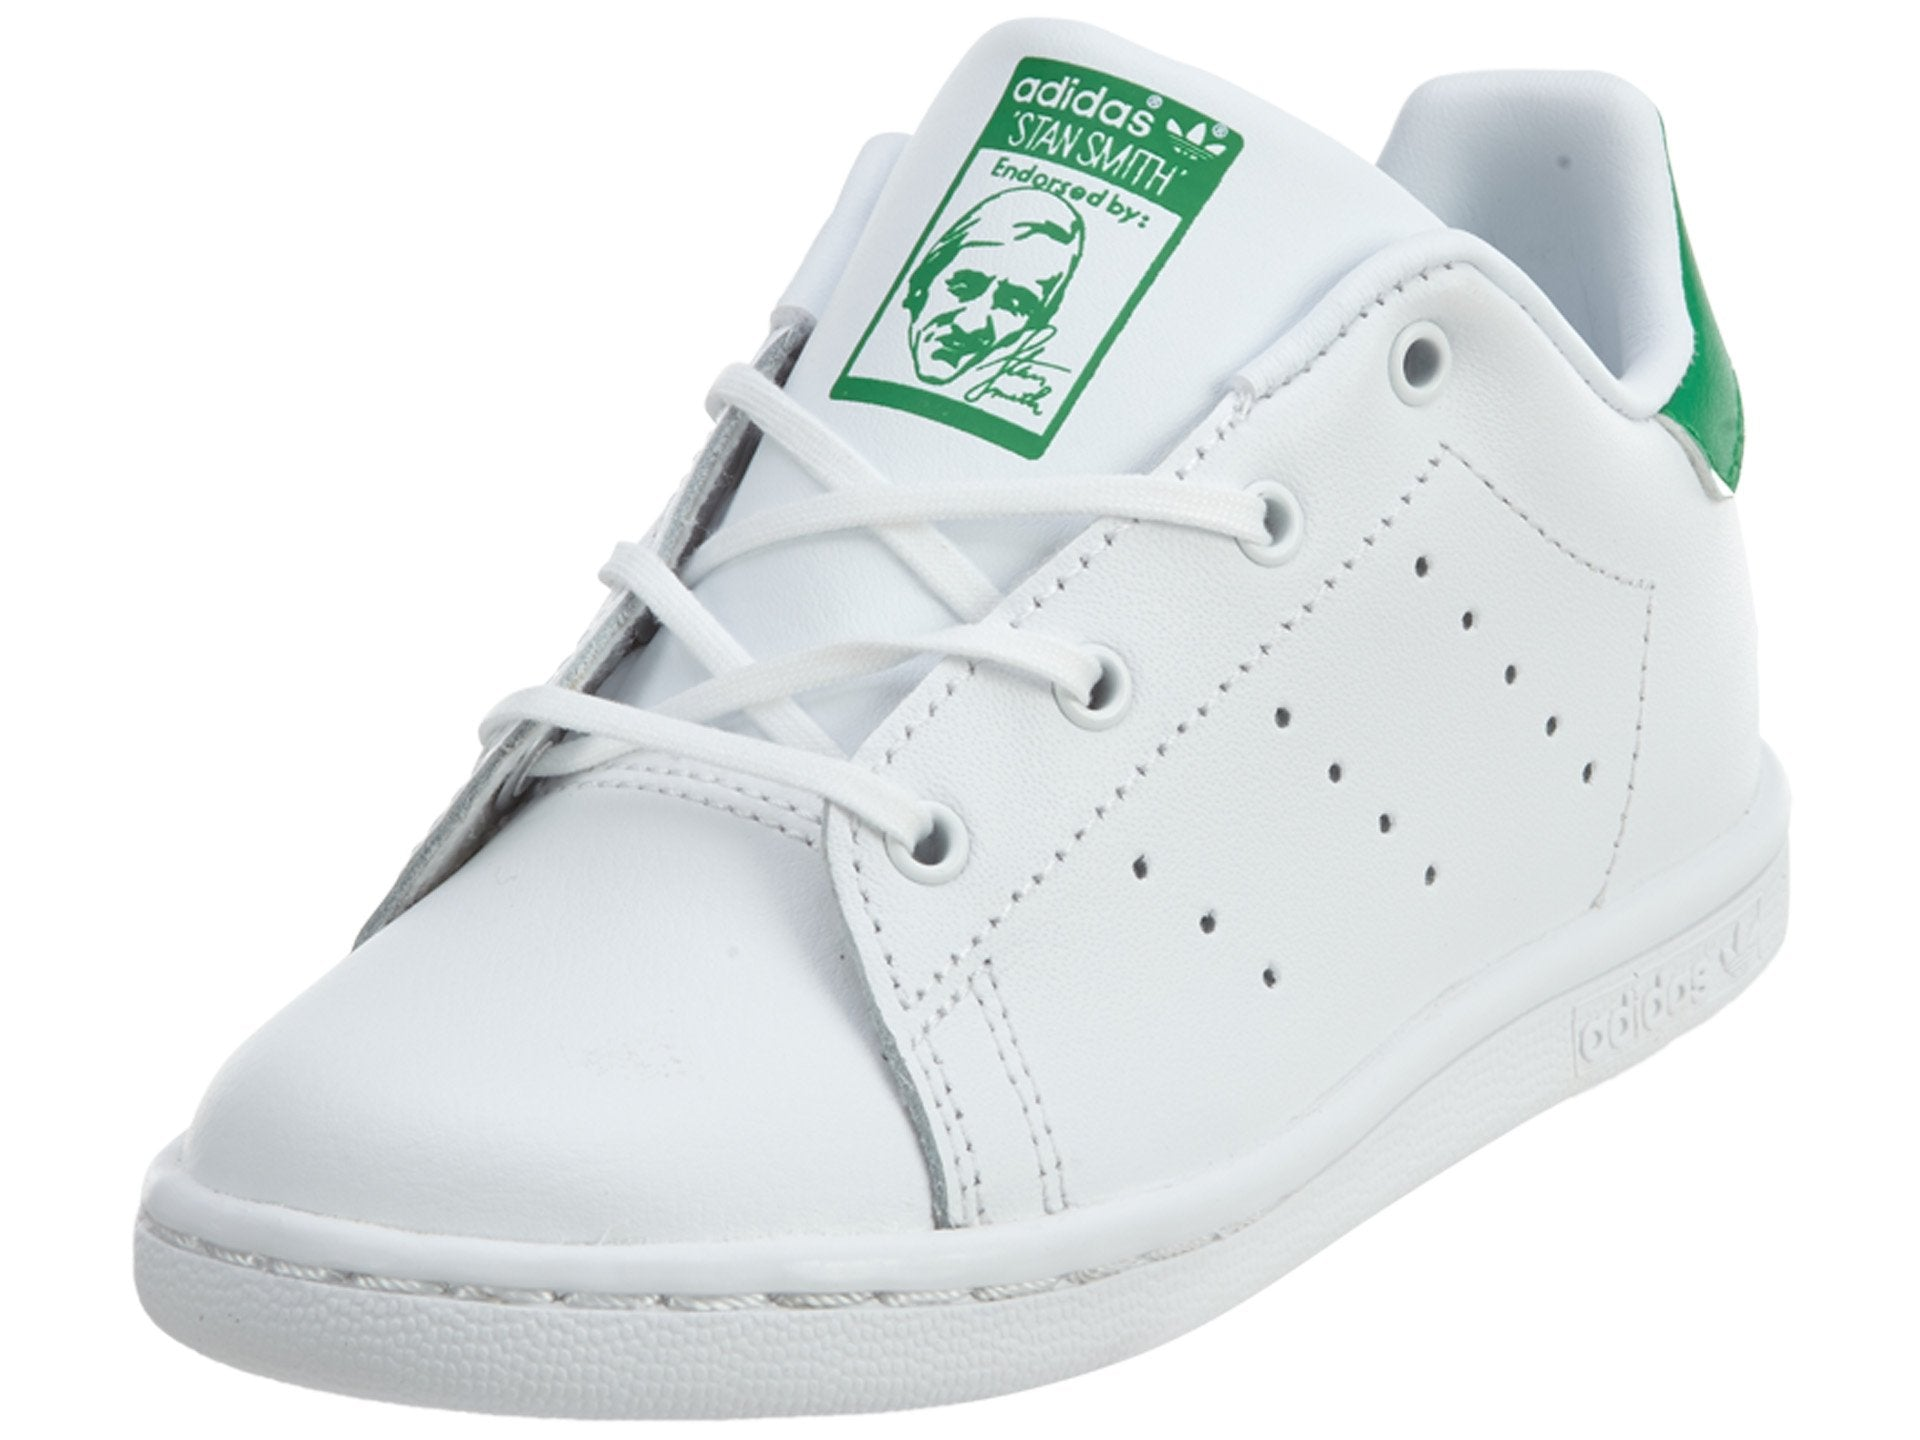 Adidas Stan Smith Toddlers Style